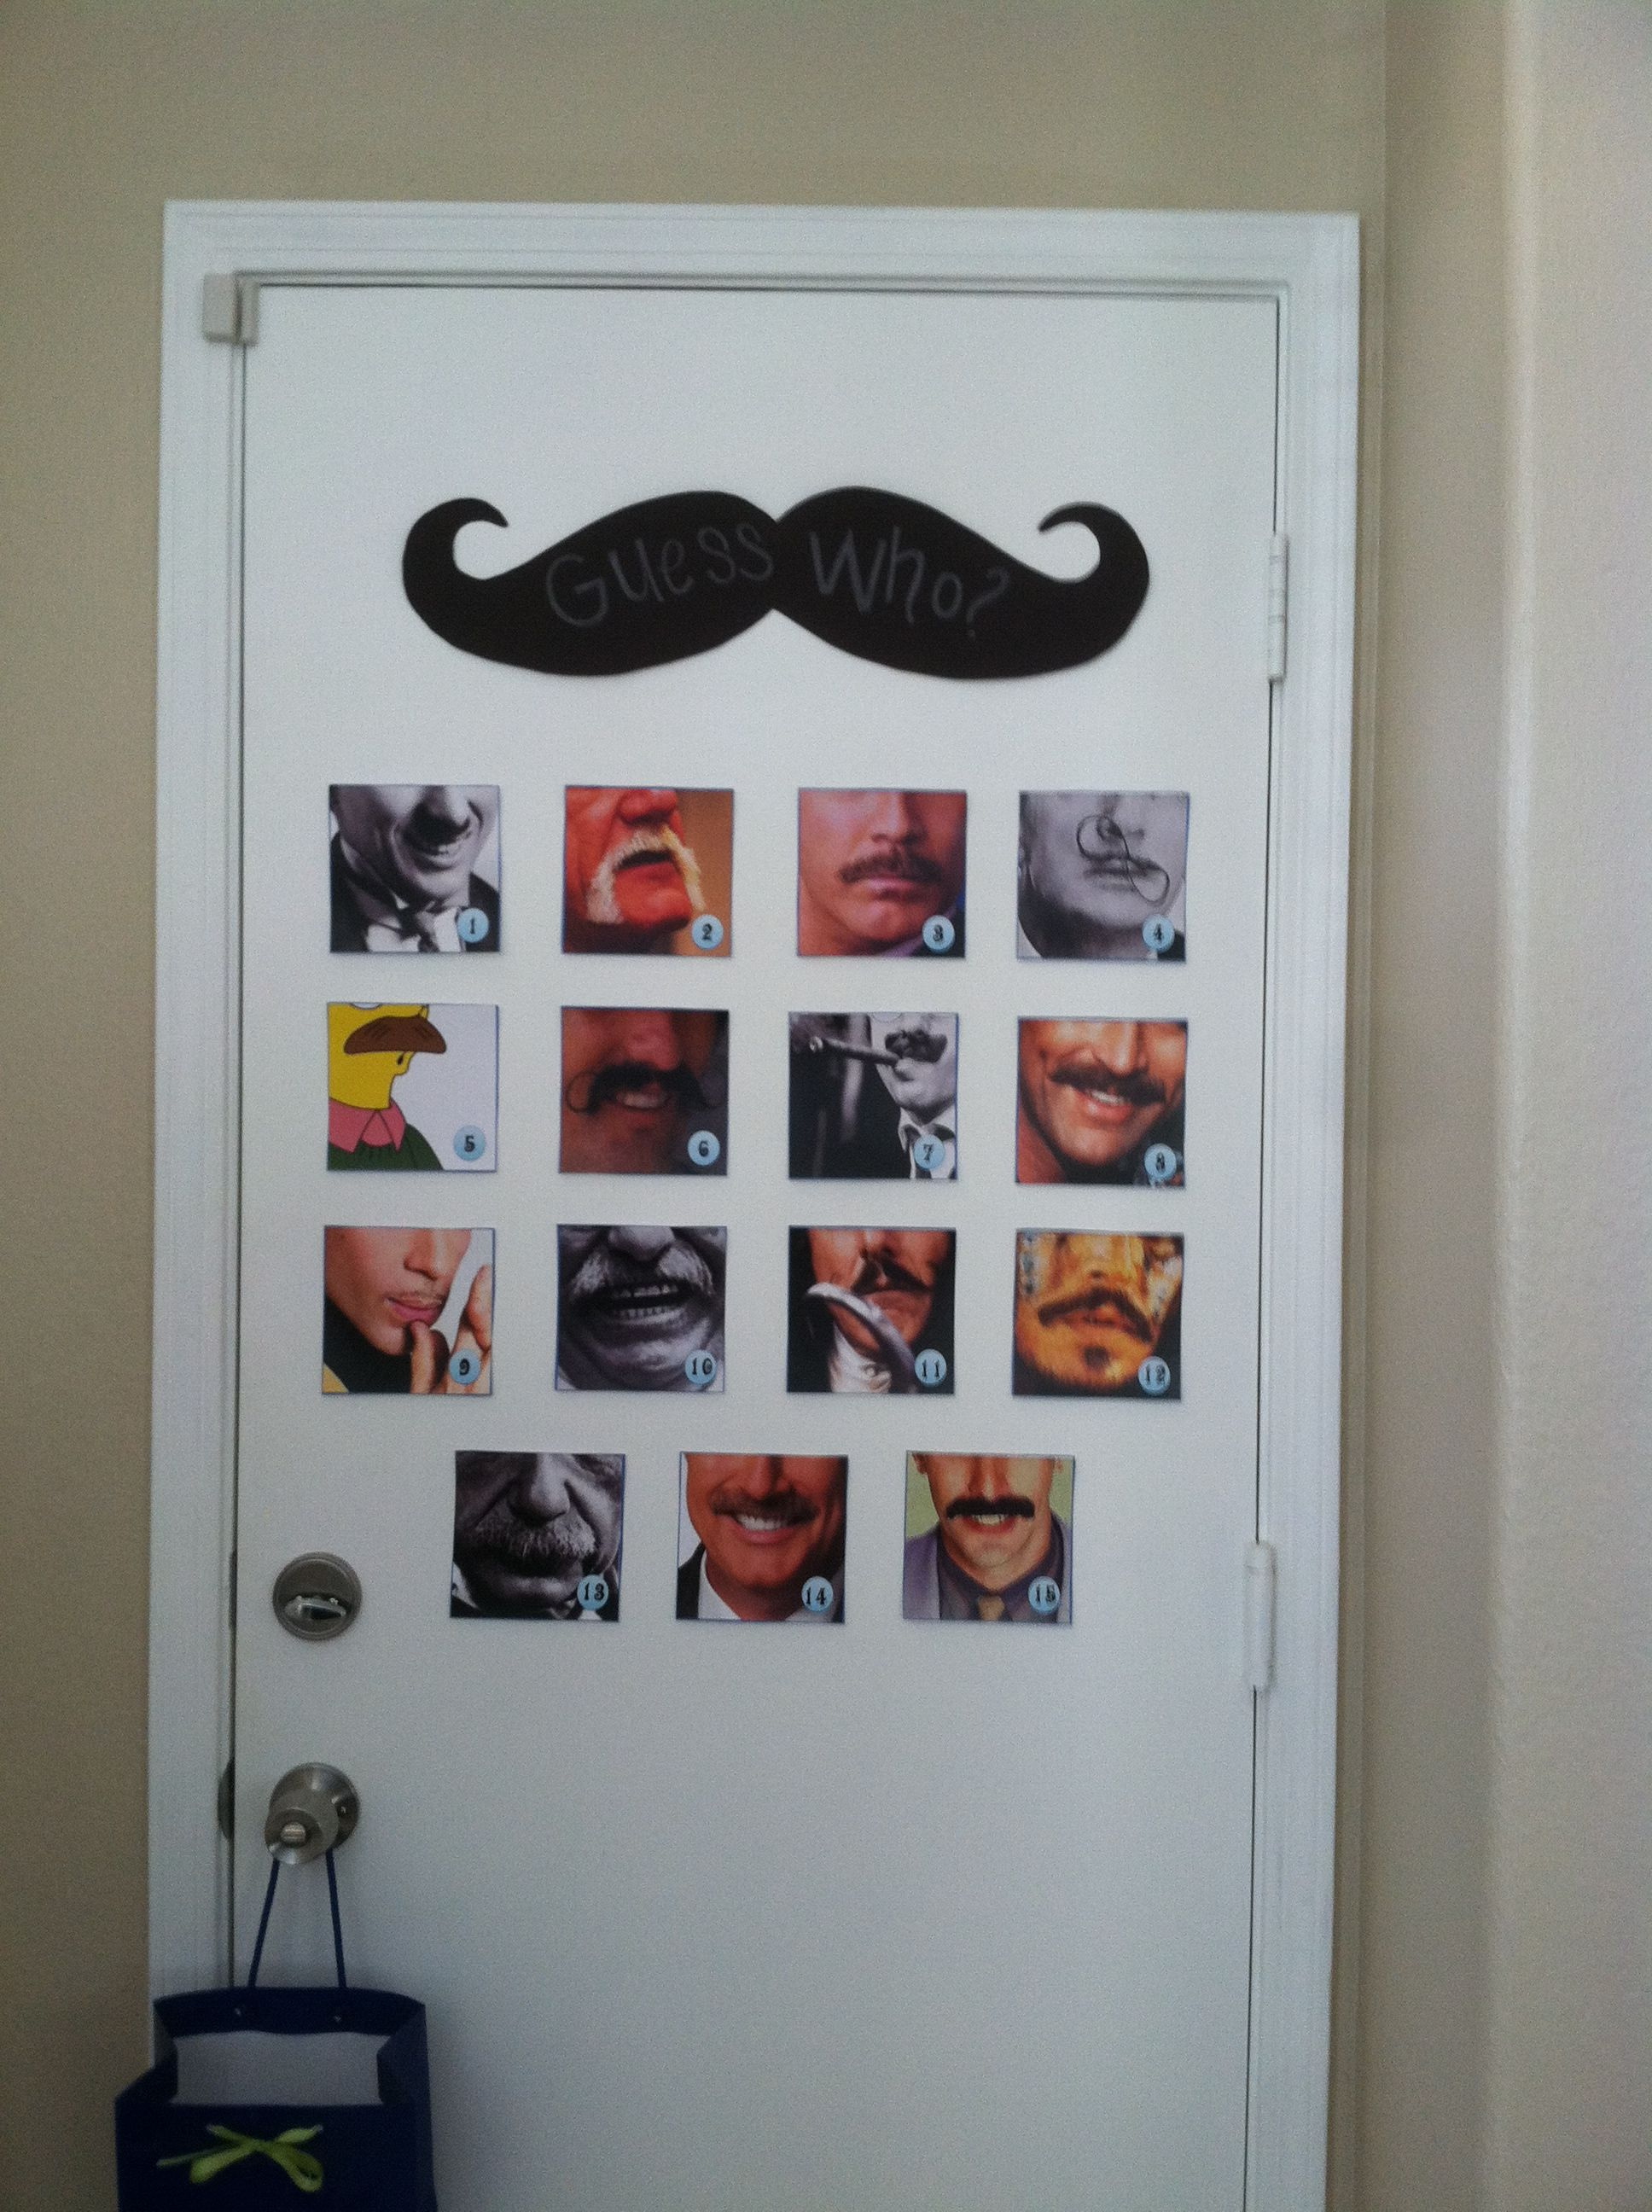 """Guess Who"" is wearing the Mustache game.  All famous people, a fun game."